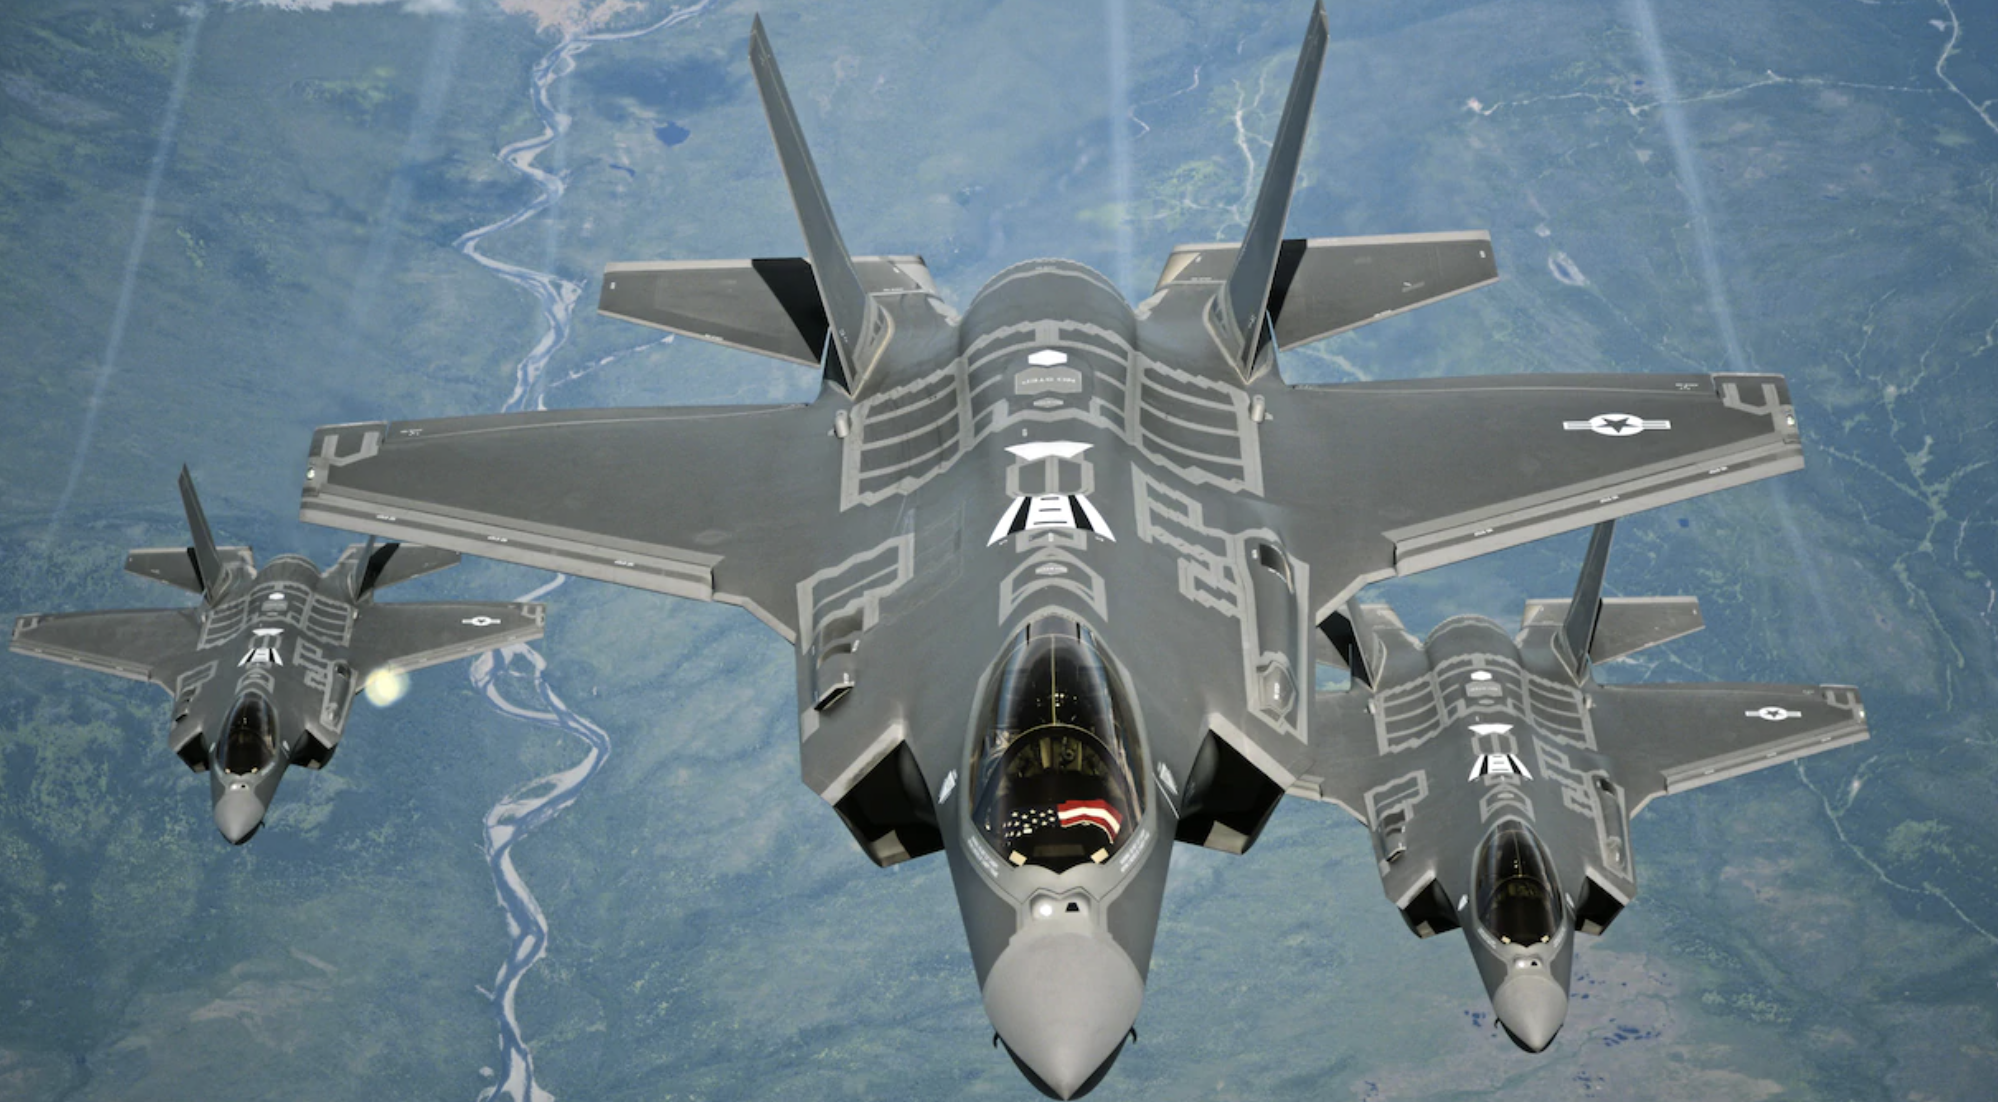 NATIONAL SECURITY: Congress needs to fully fund the Joint Strike Fighter